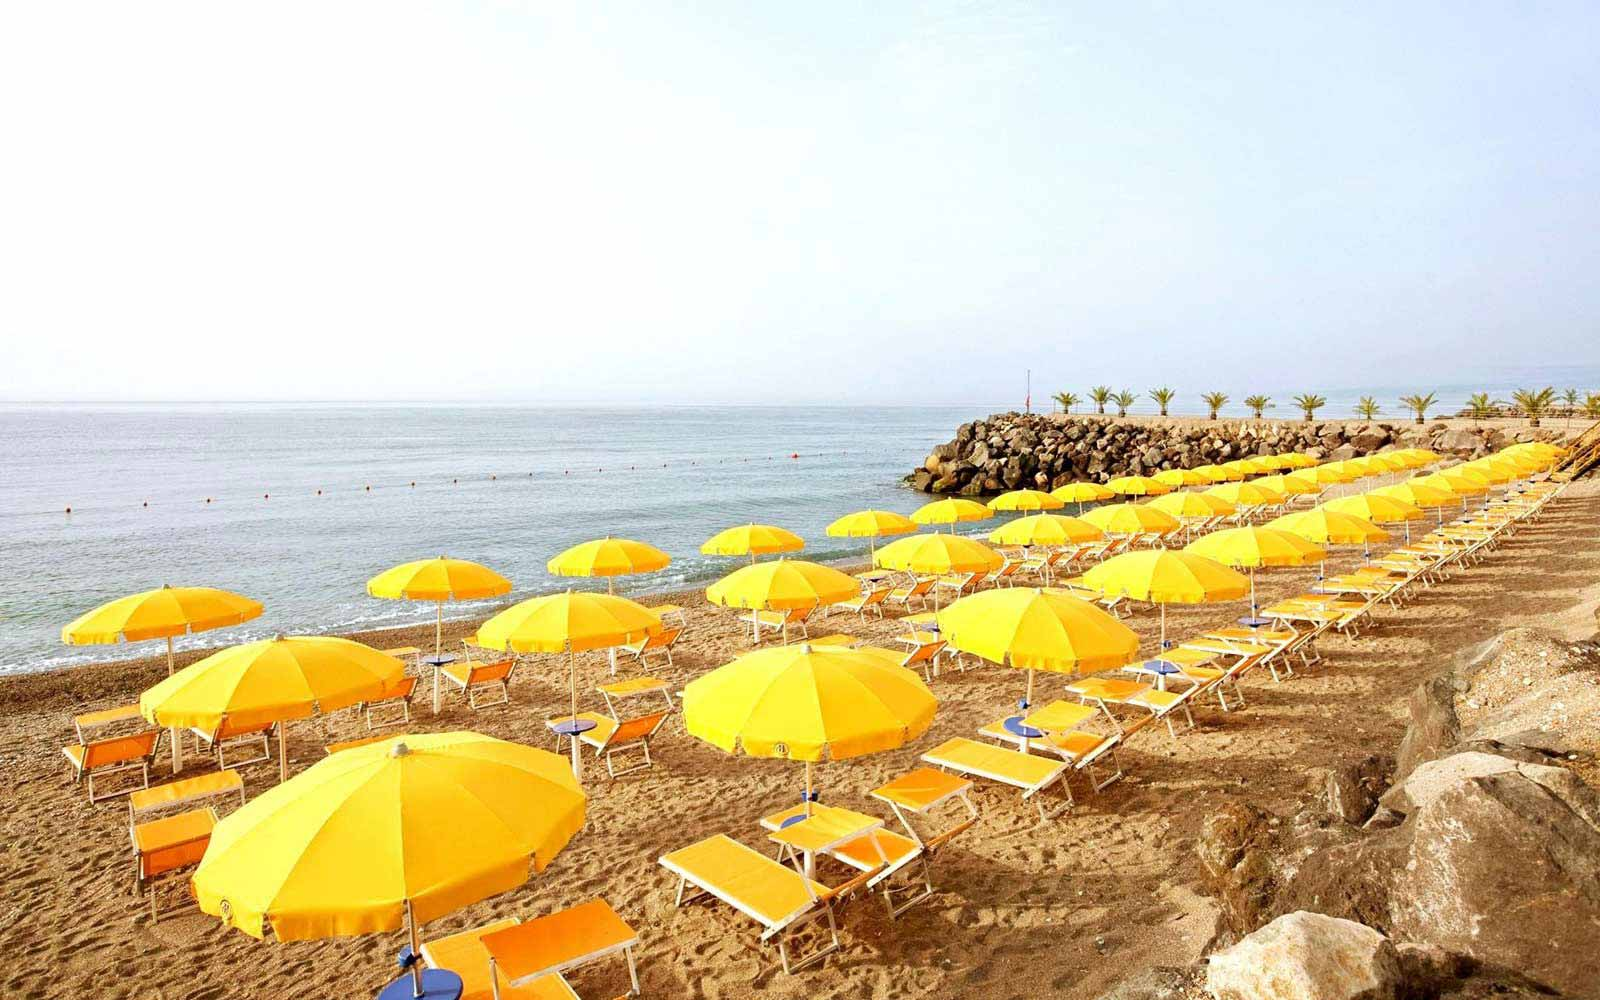 The beach at Hilton Giardini Naxos